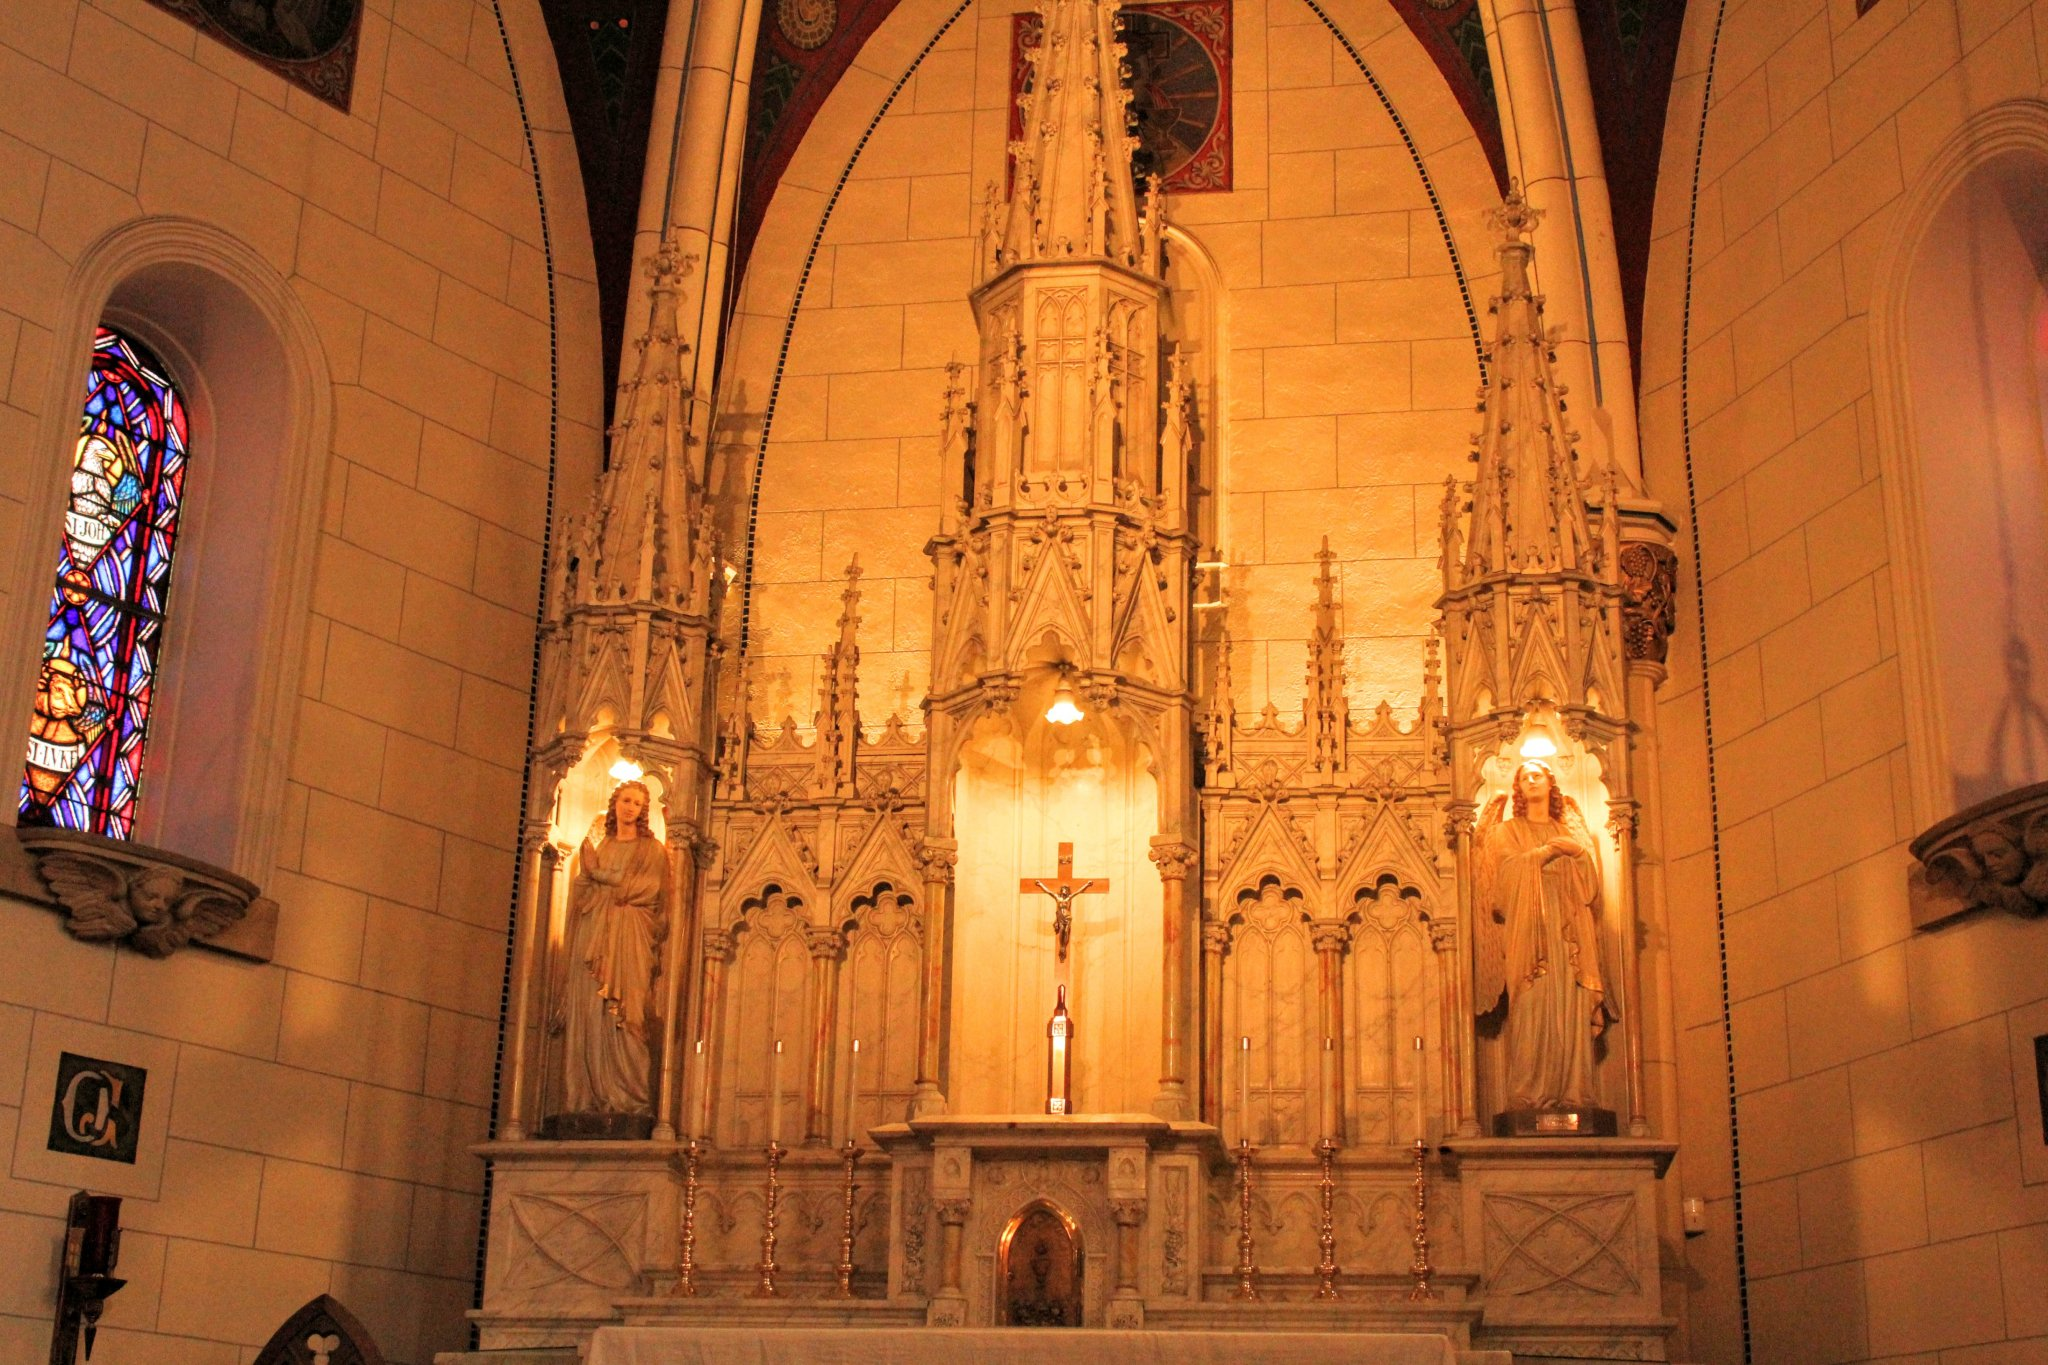 Loretto Chapel Image - Main Altar with two angels juxtaposed